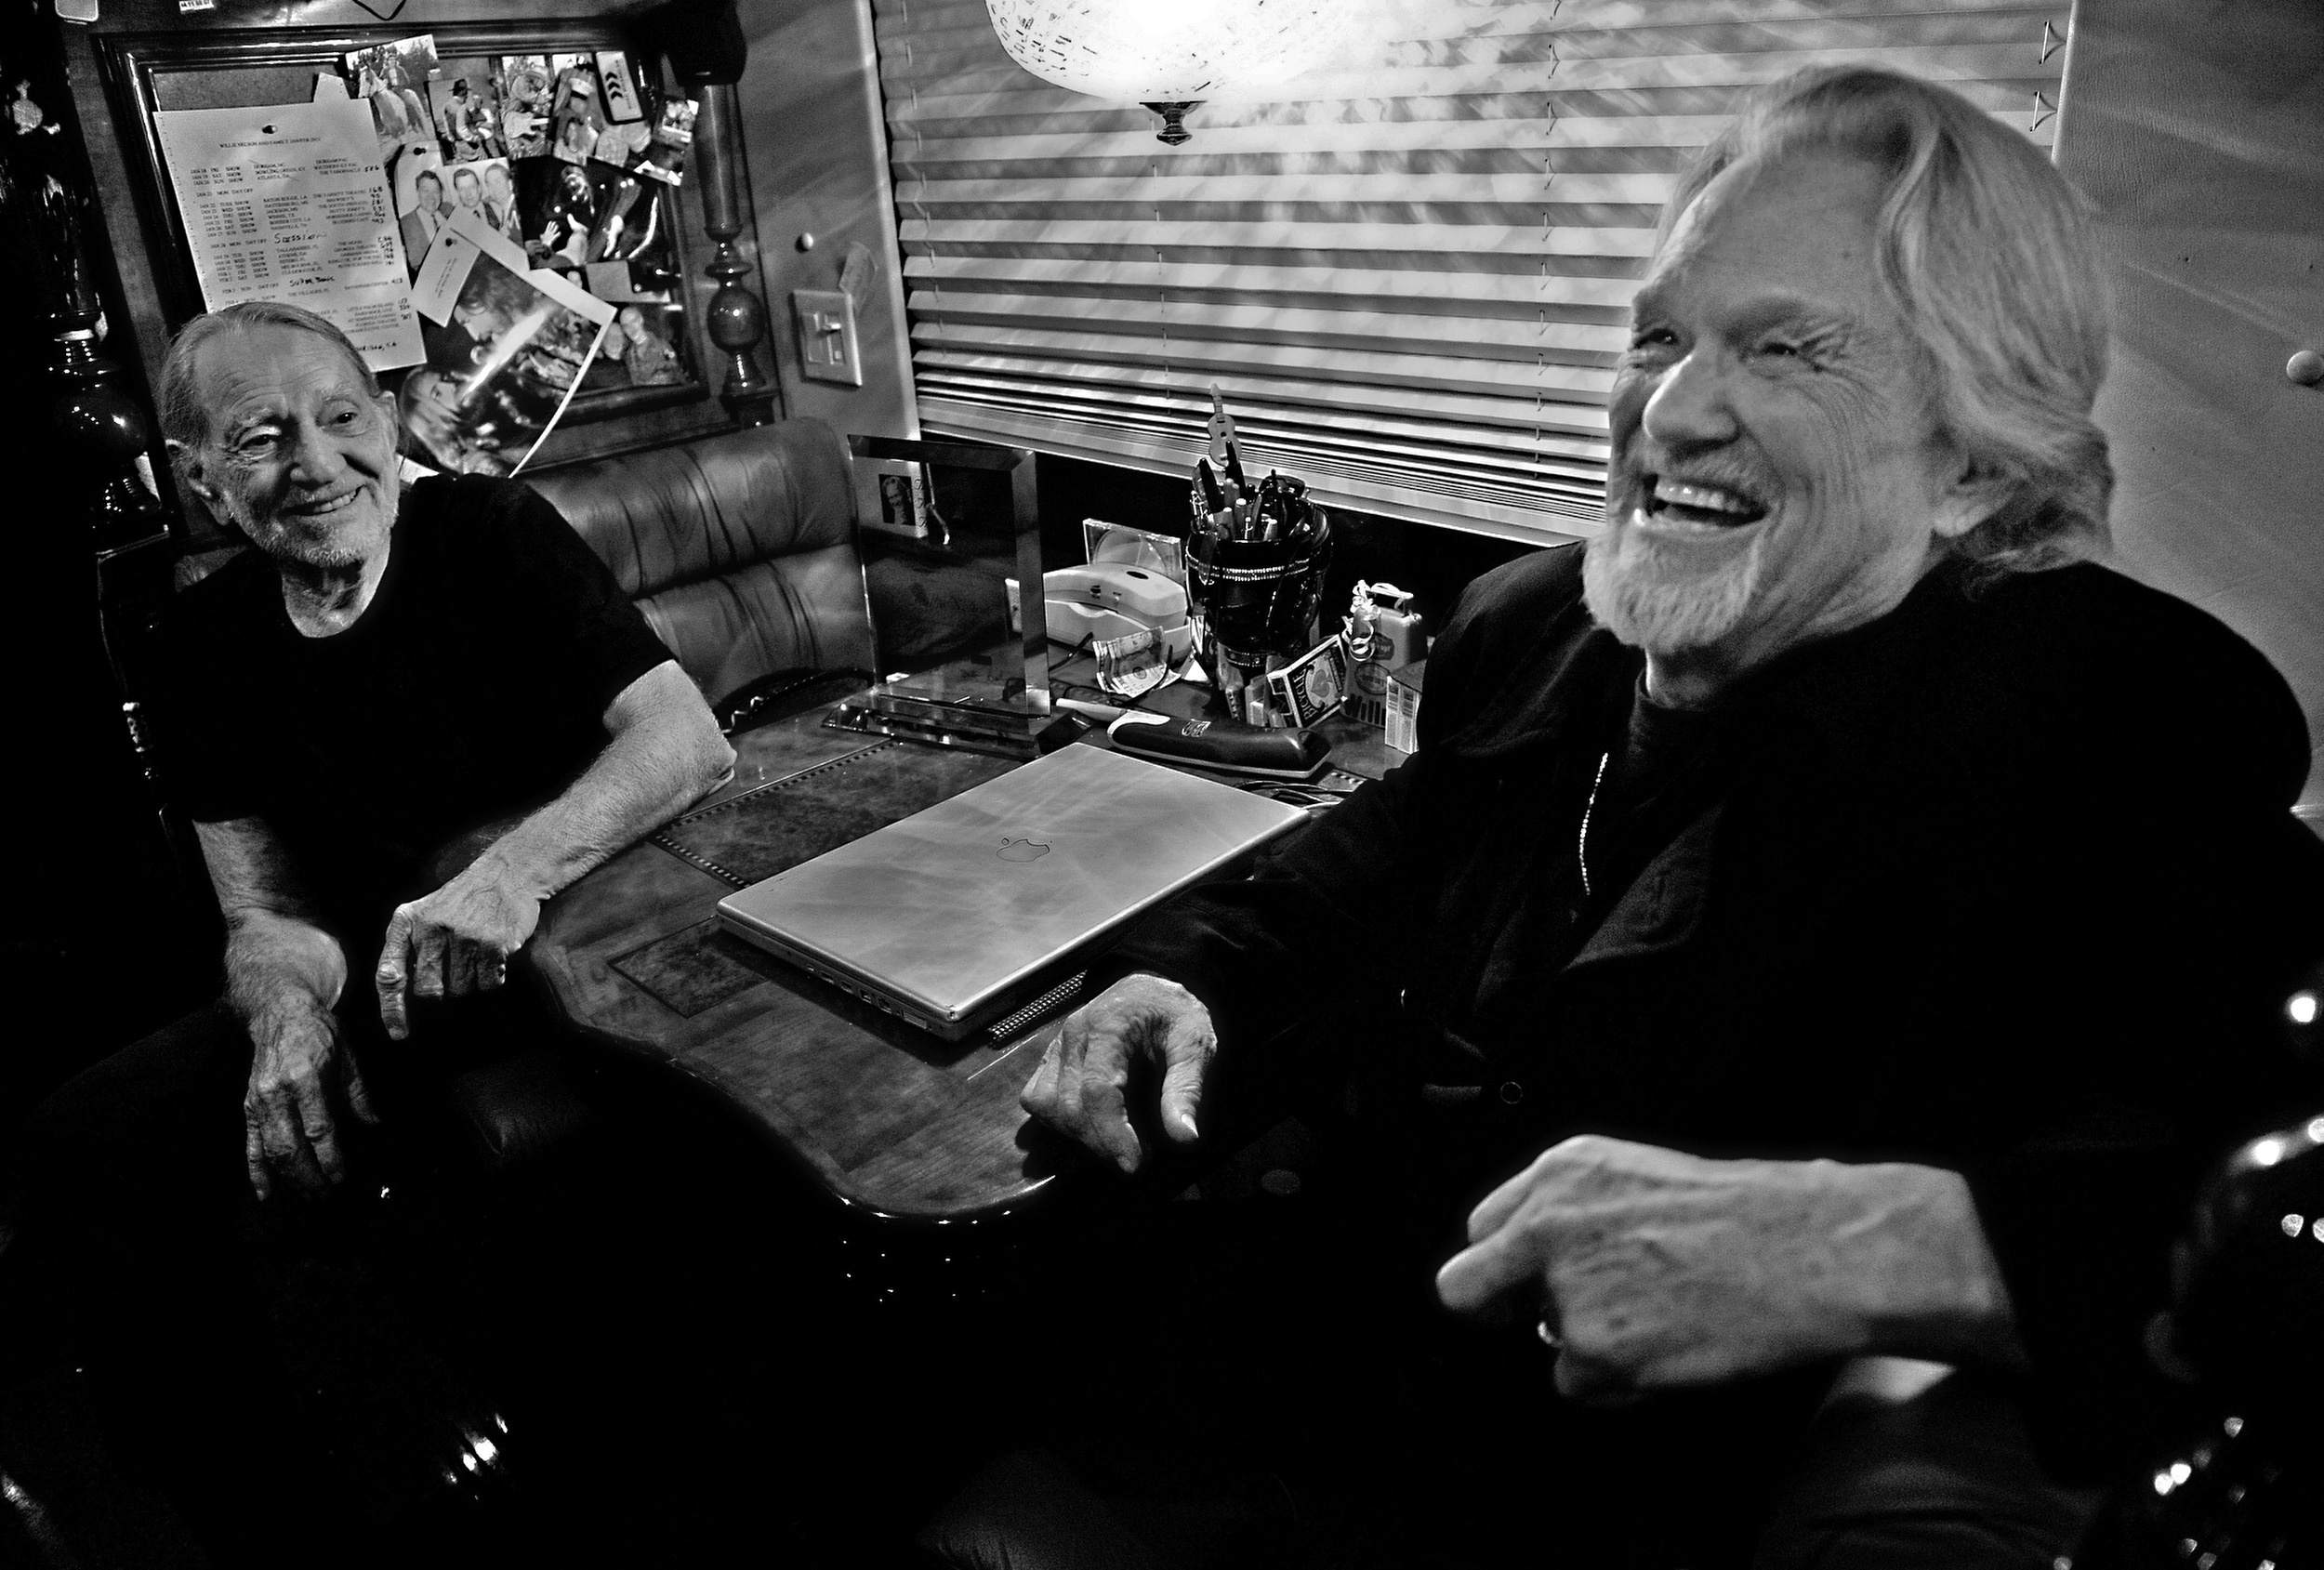 Willie Nelson and Kris Kristofferson share a joke together on the tour bus after performing at the Bluebird Cafe in Nashville, Tenn.